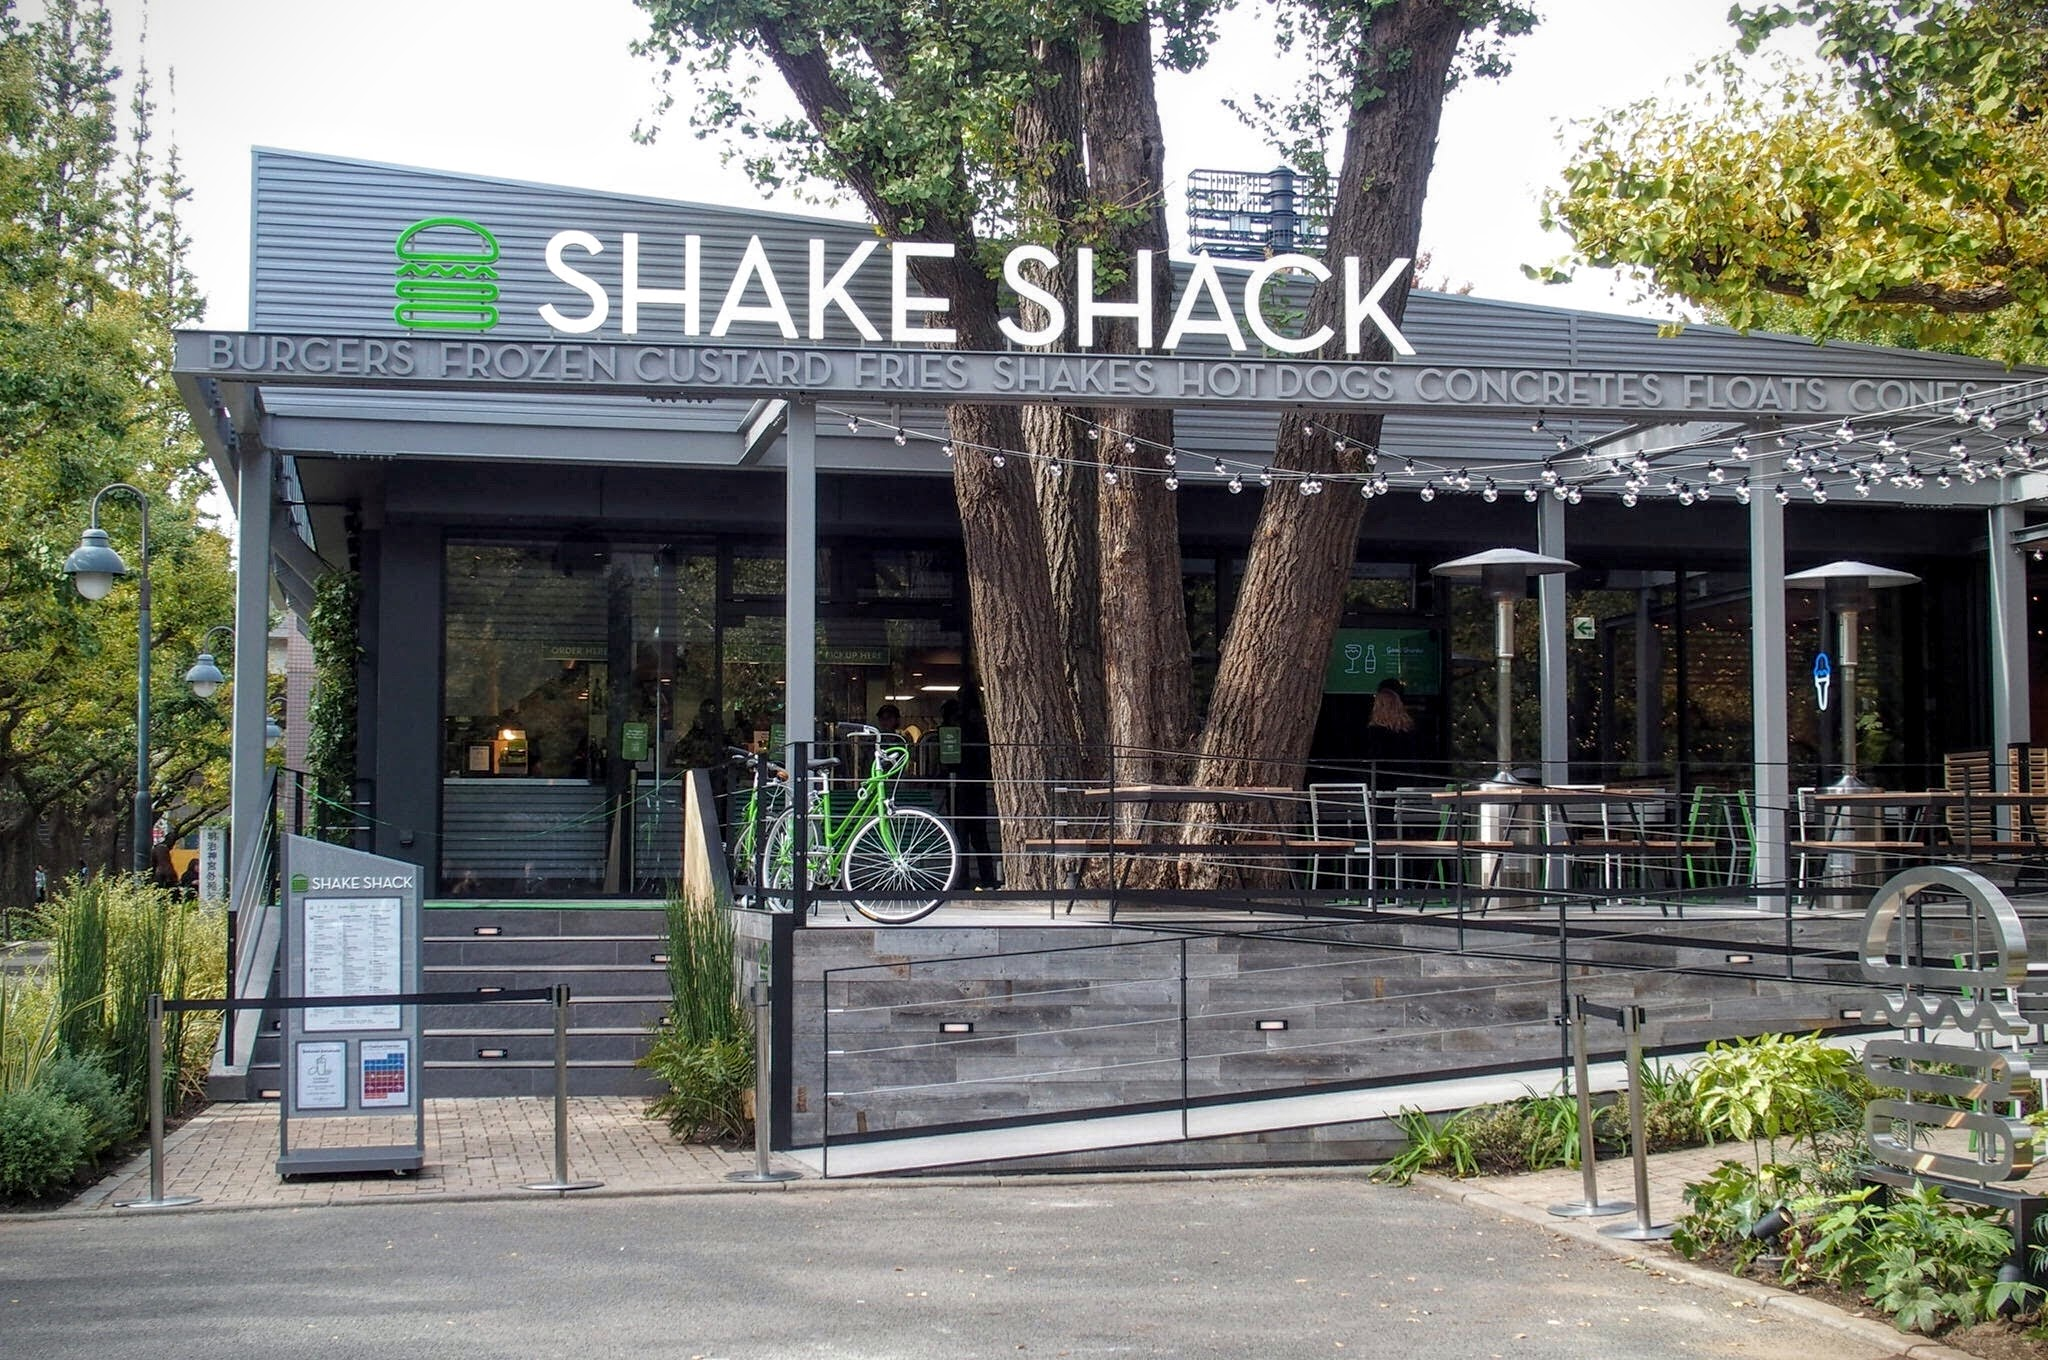 """Sheikh Shack"" is open in the shrine outside the shrine! Gourmet hamburger from NY lands in Japan for the first time"